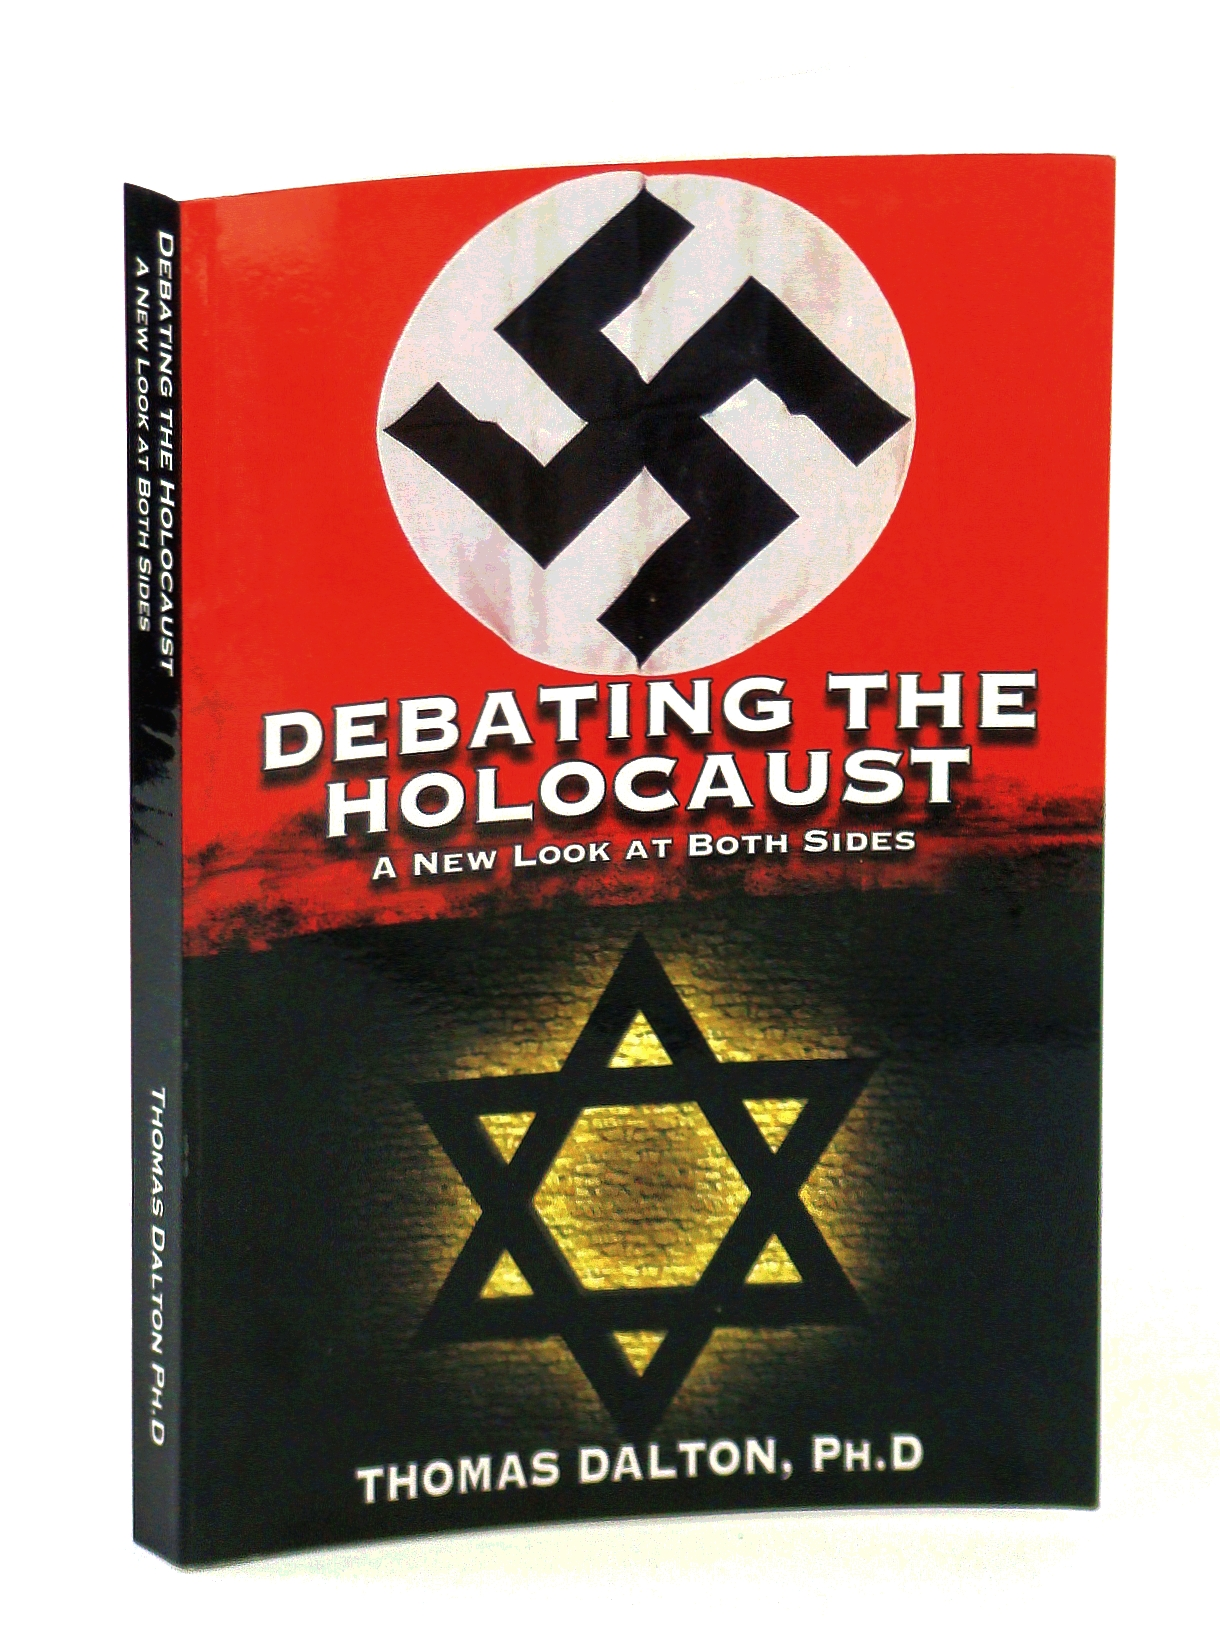 Image for Debating the Holocaust: A New Look at Both Sides